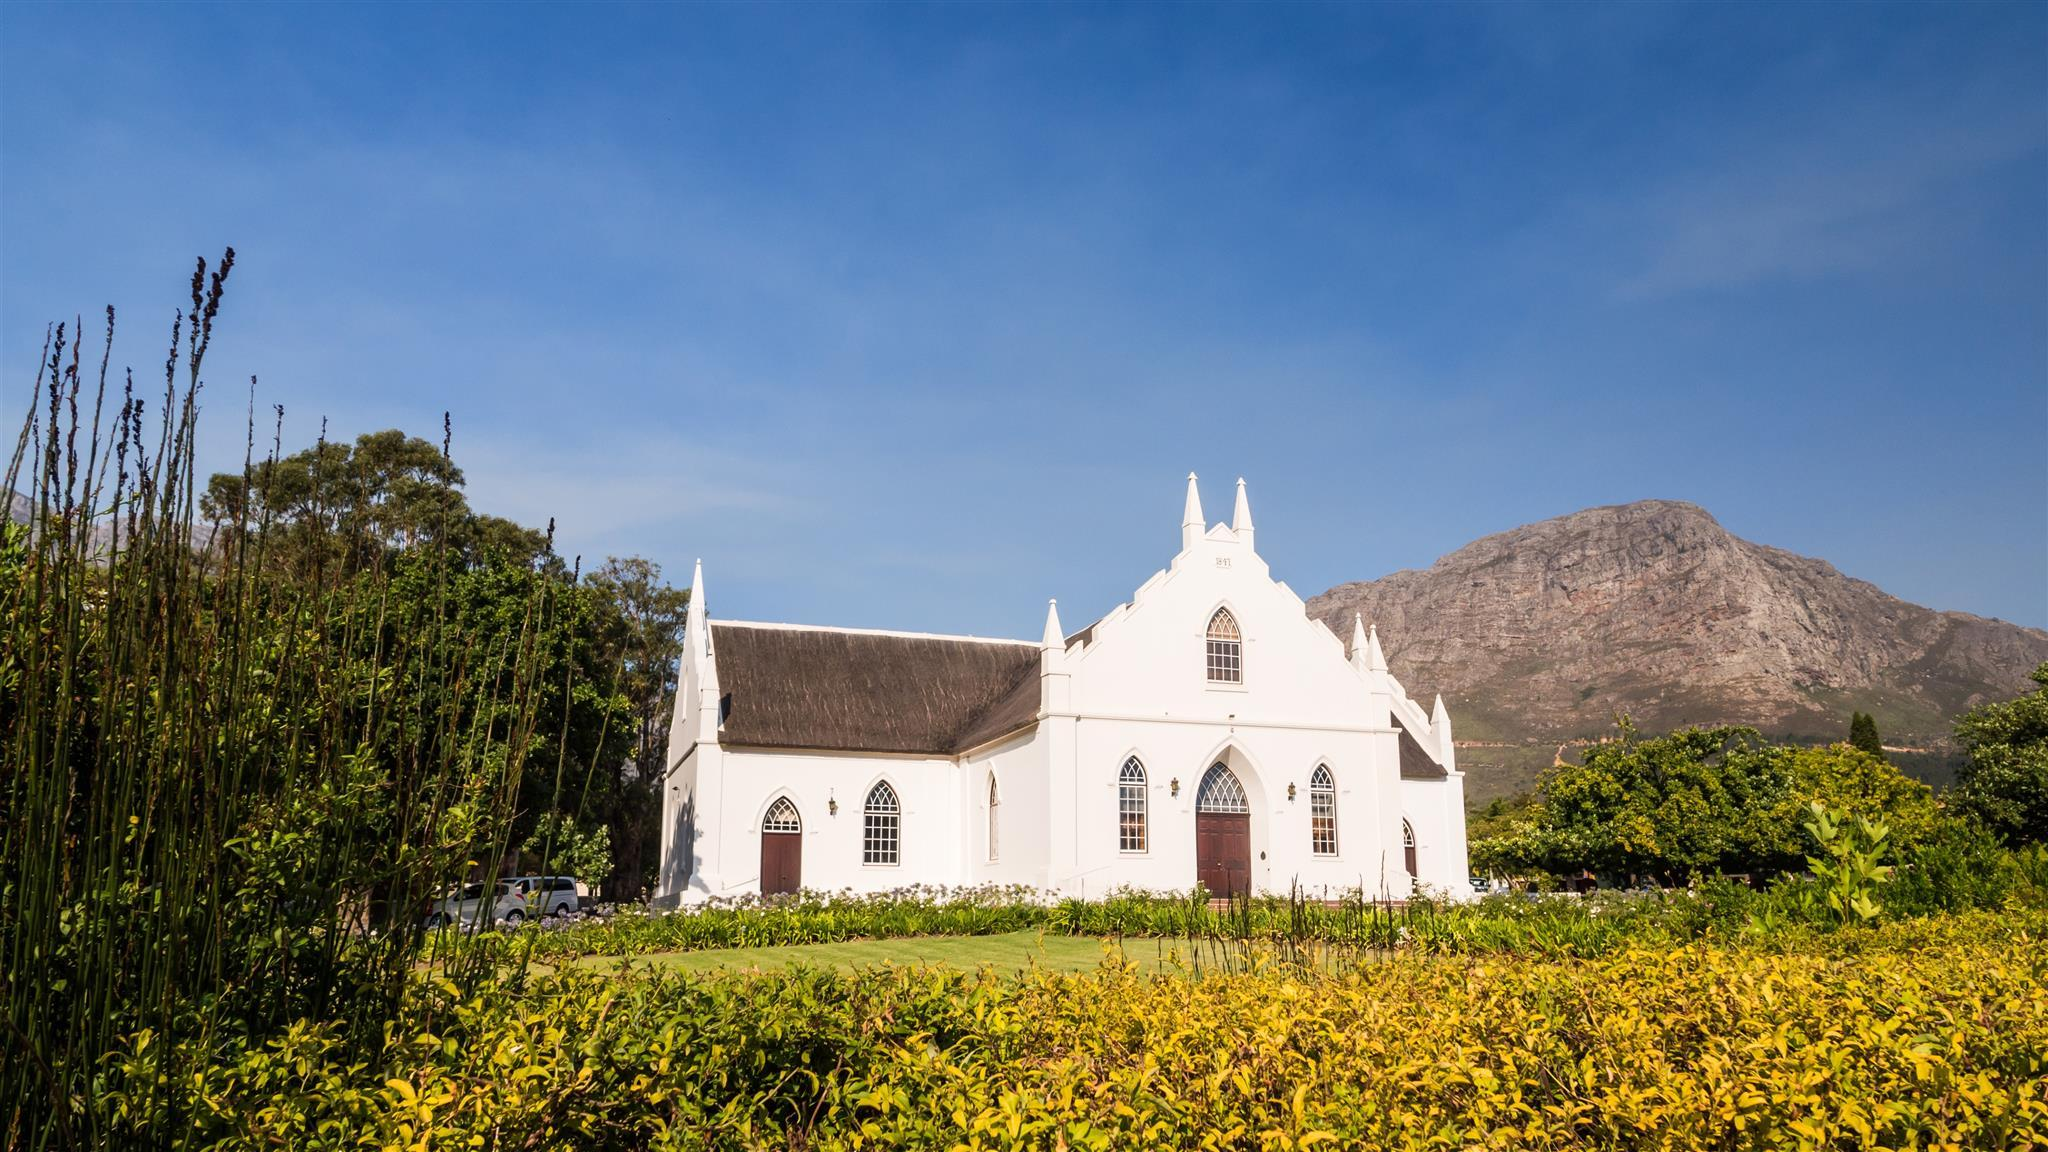 Accommodations South Africa Best Franschhoek Accommodation Deals In 2019 A 51 Night South